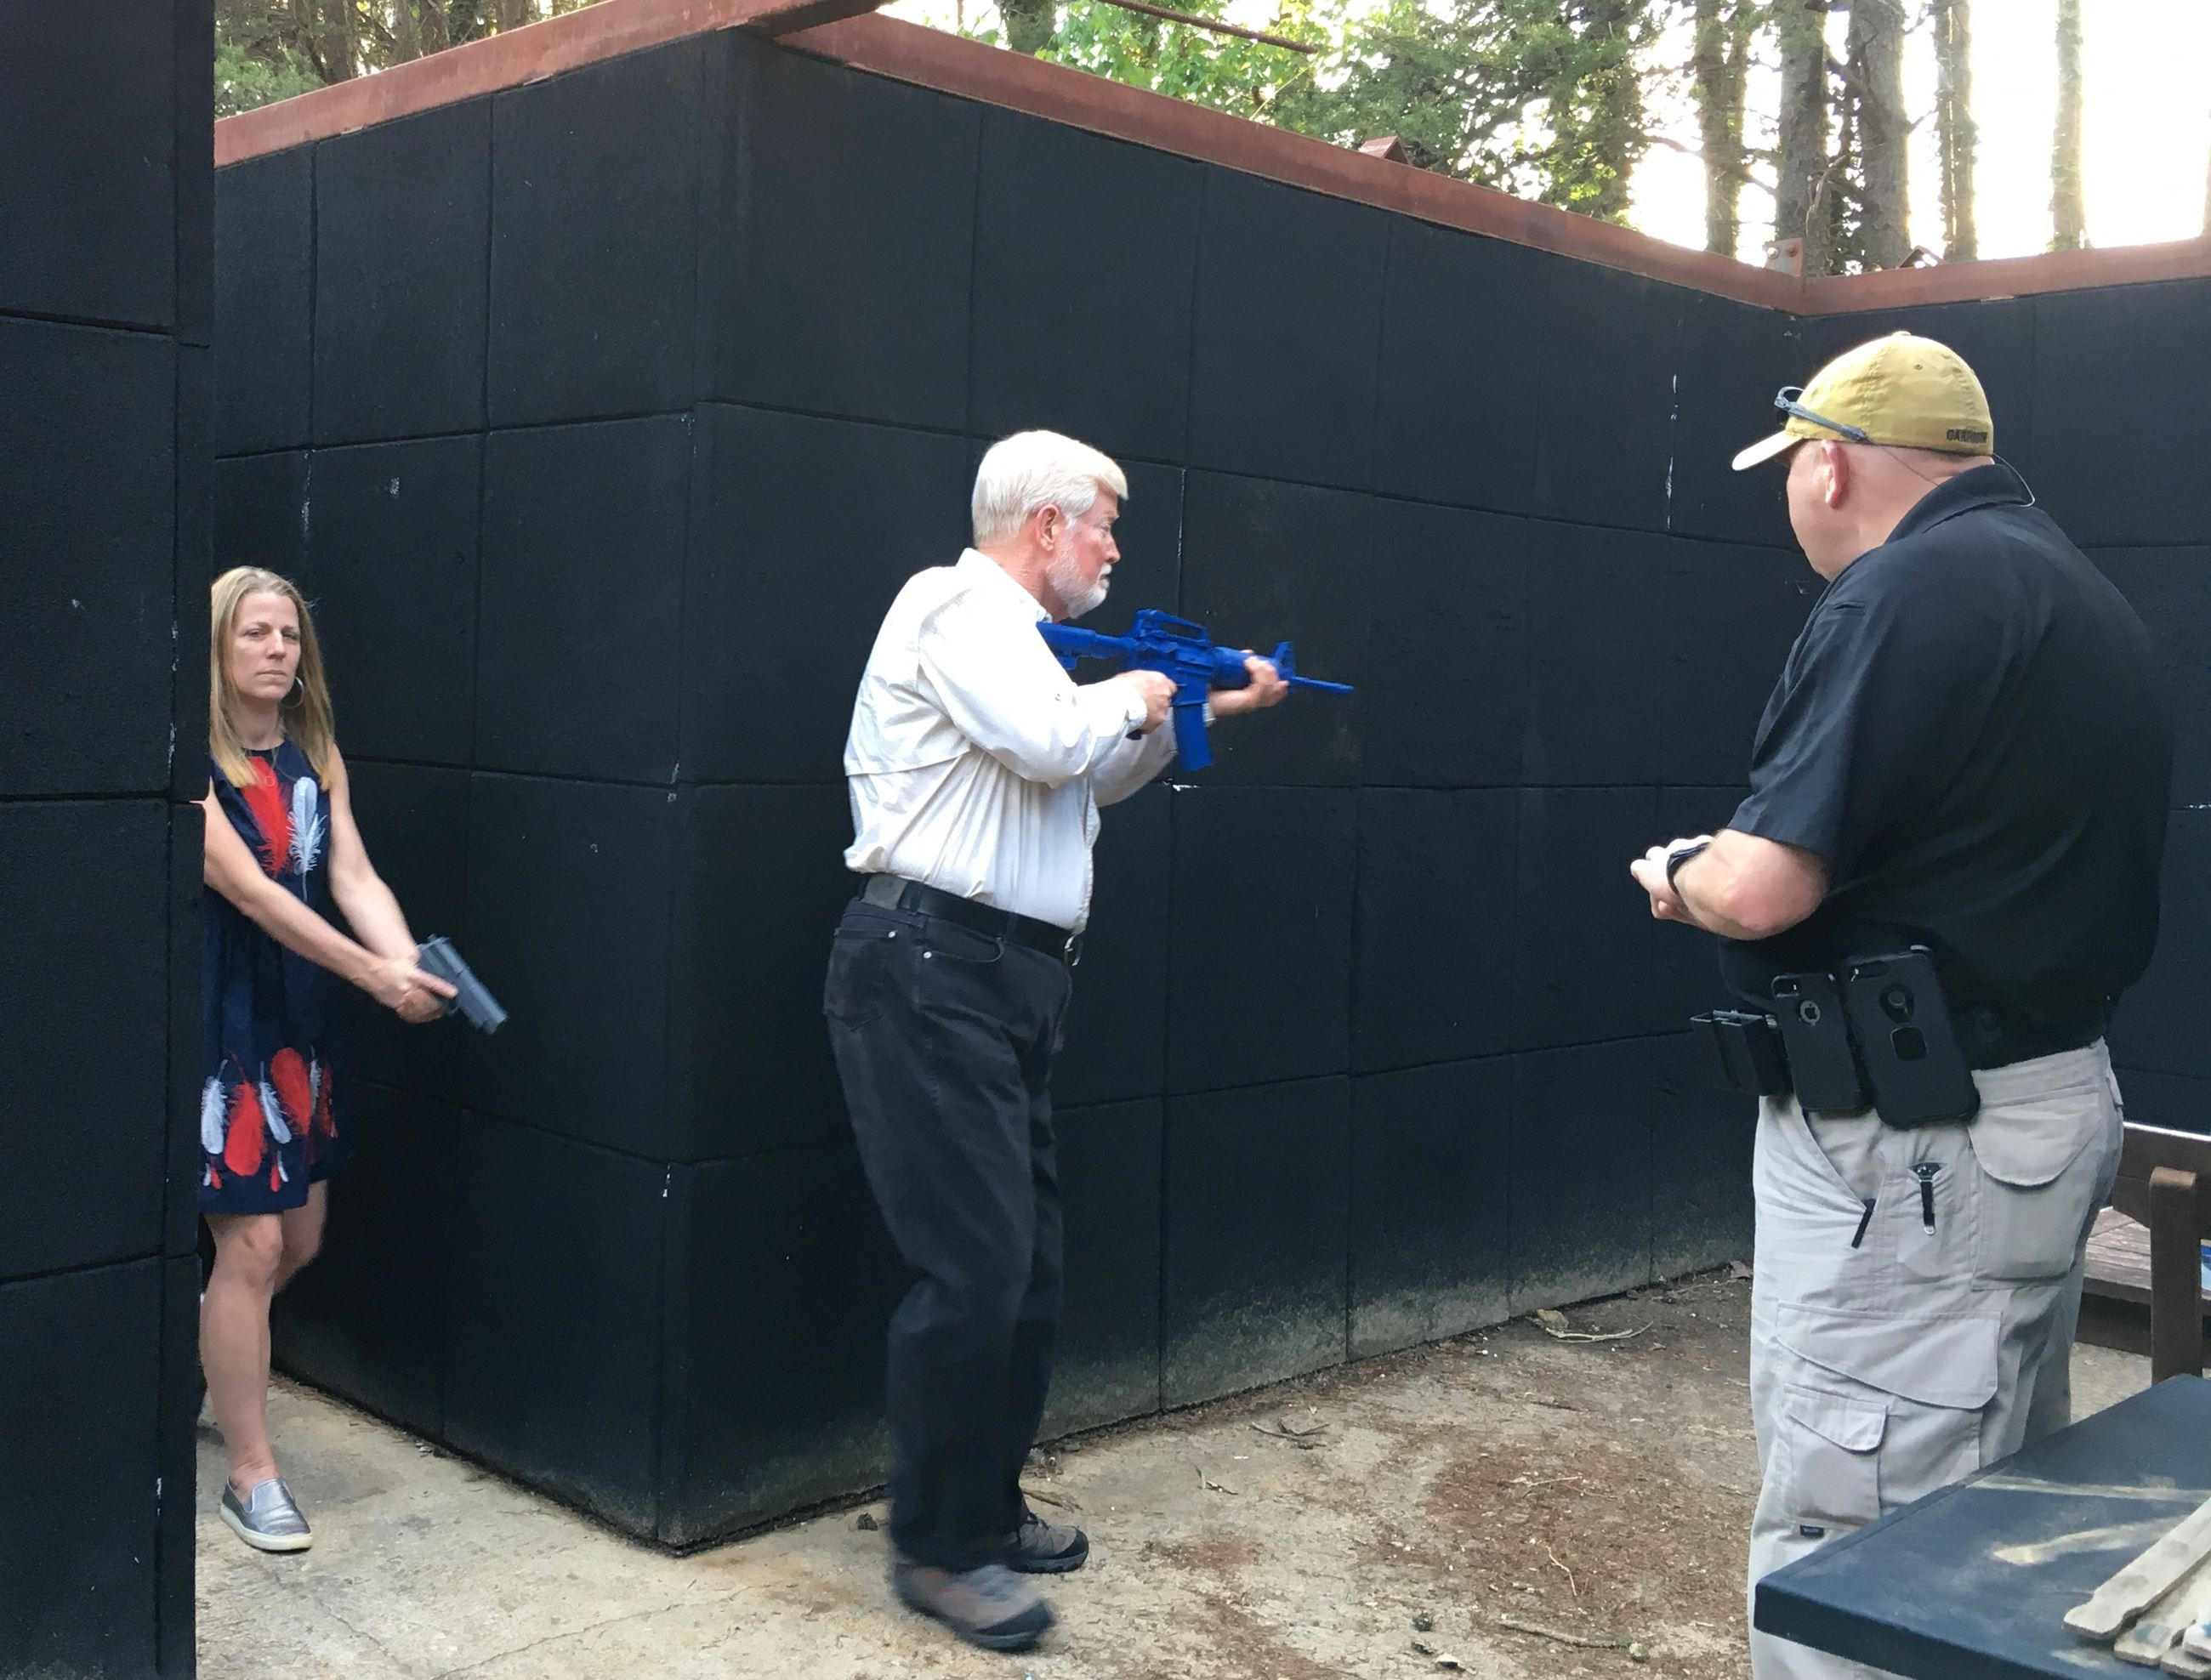 Citizens learn building clearing tactics in class with certified firearms instructors.